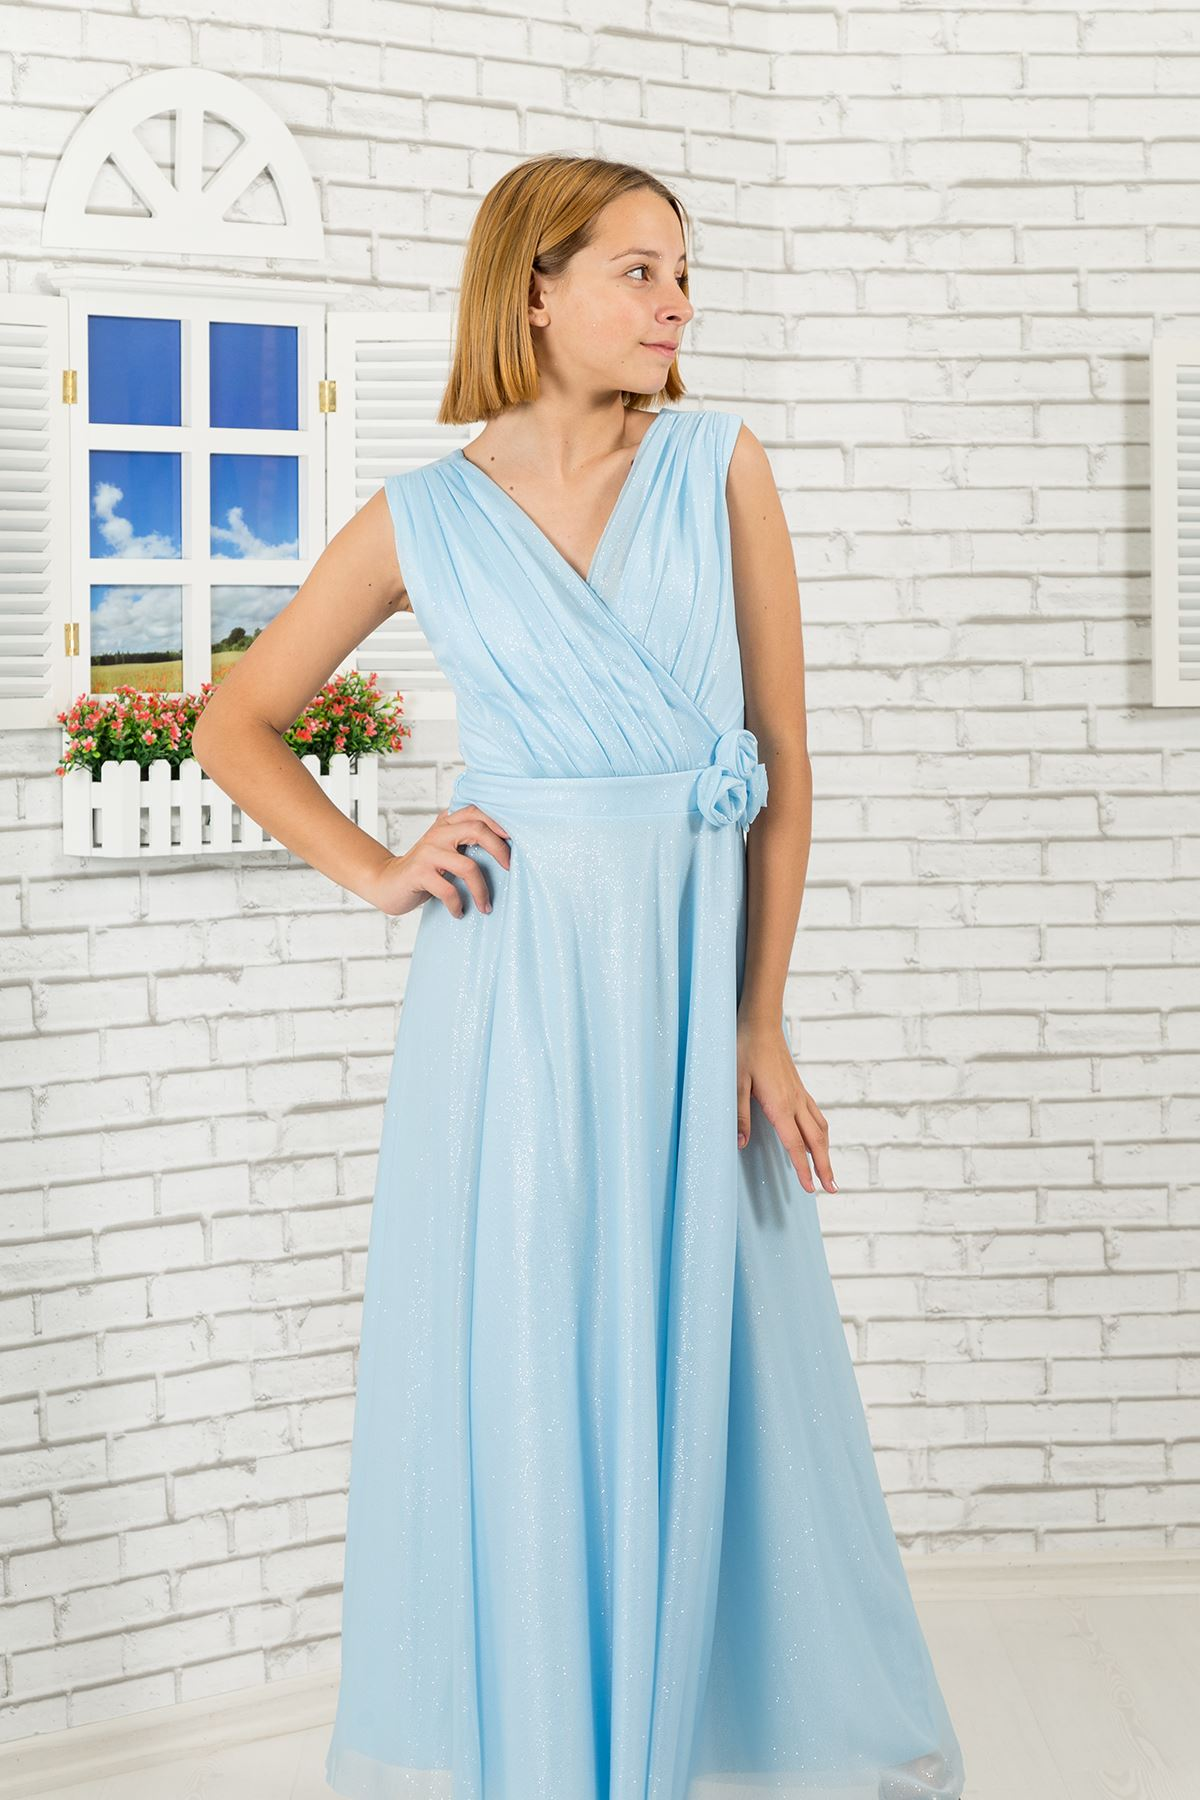 Silvery chiffon fabric, v-neck detailed Girl Evening Dress 470 Light Blue